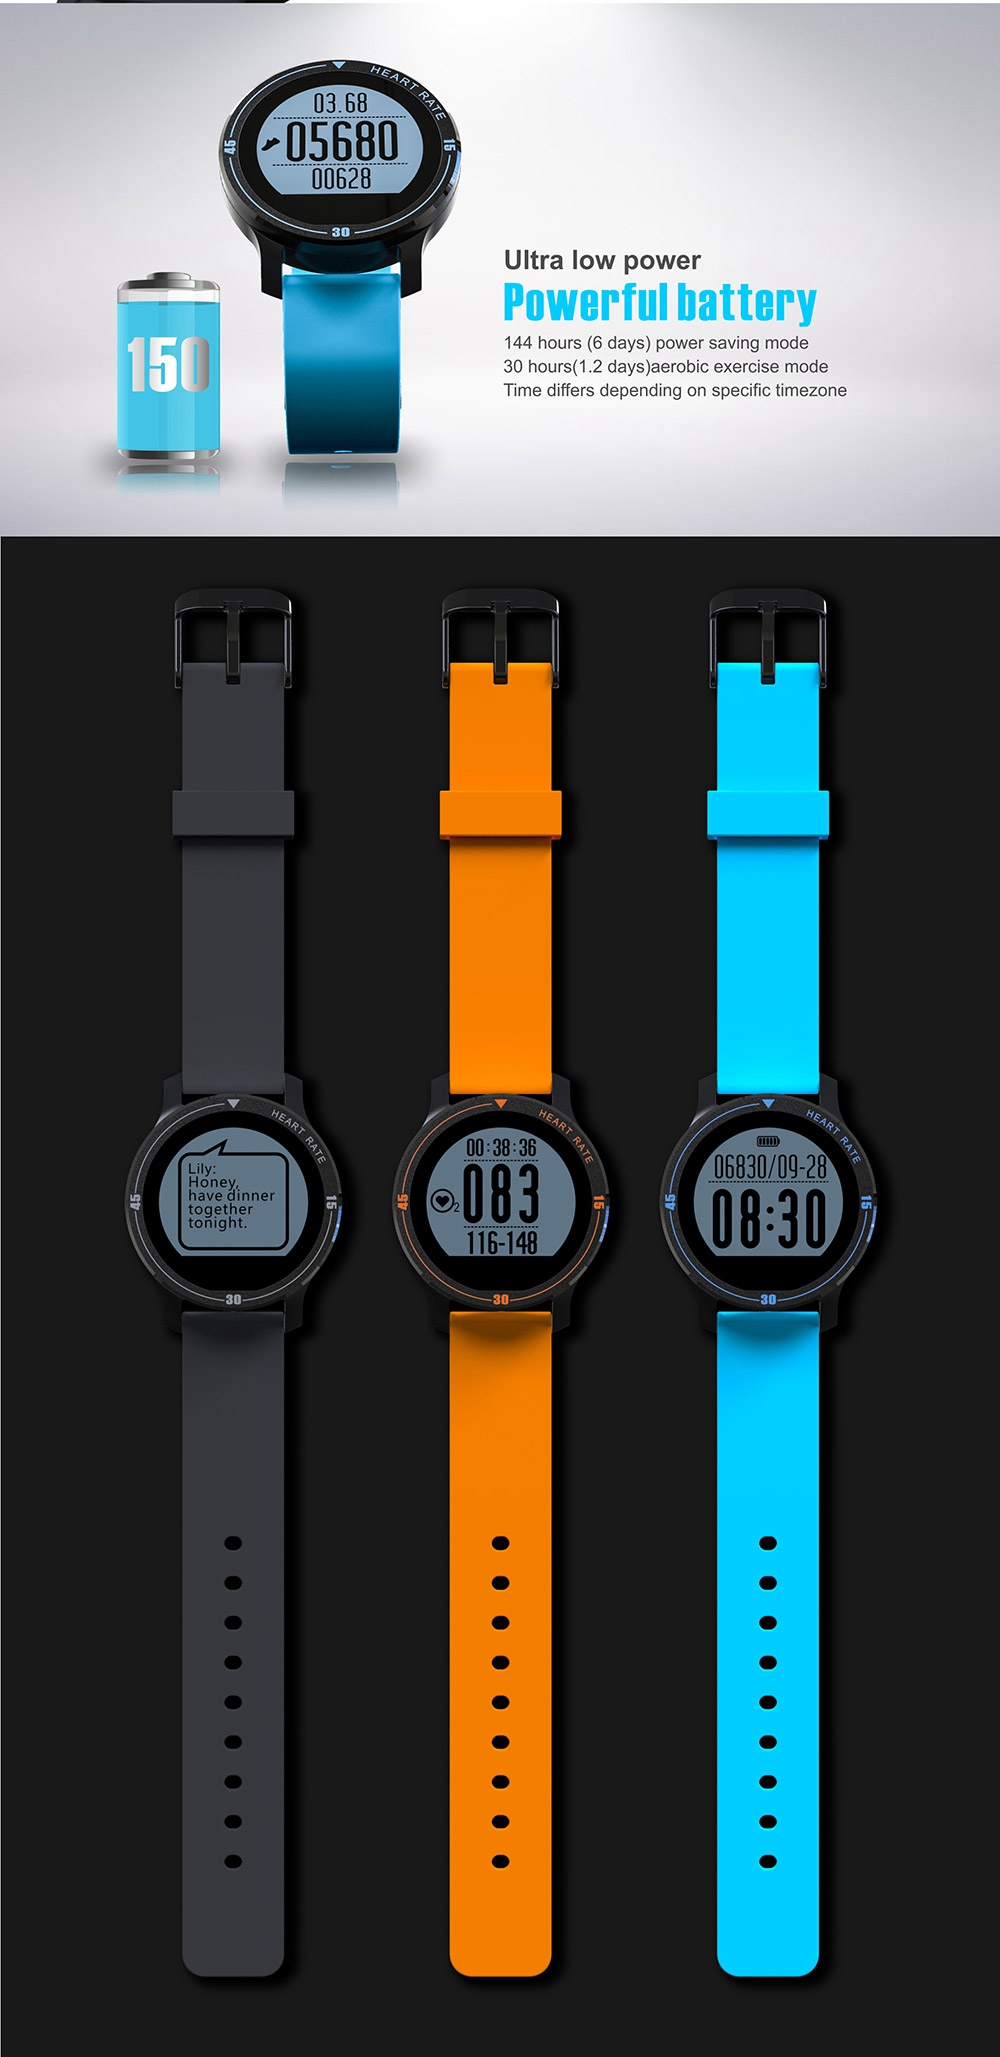 MAKIBES AEROBIC A1 SMART SPORTS WATCH BLUETOOTH DYNAMIC HEART RATE MONITOR SMARTWATCH S200 231407 21